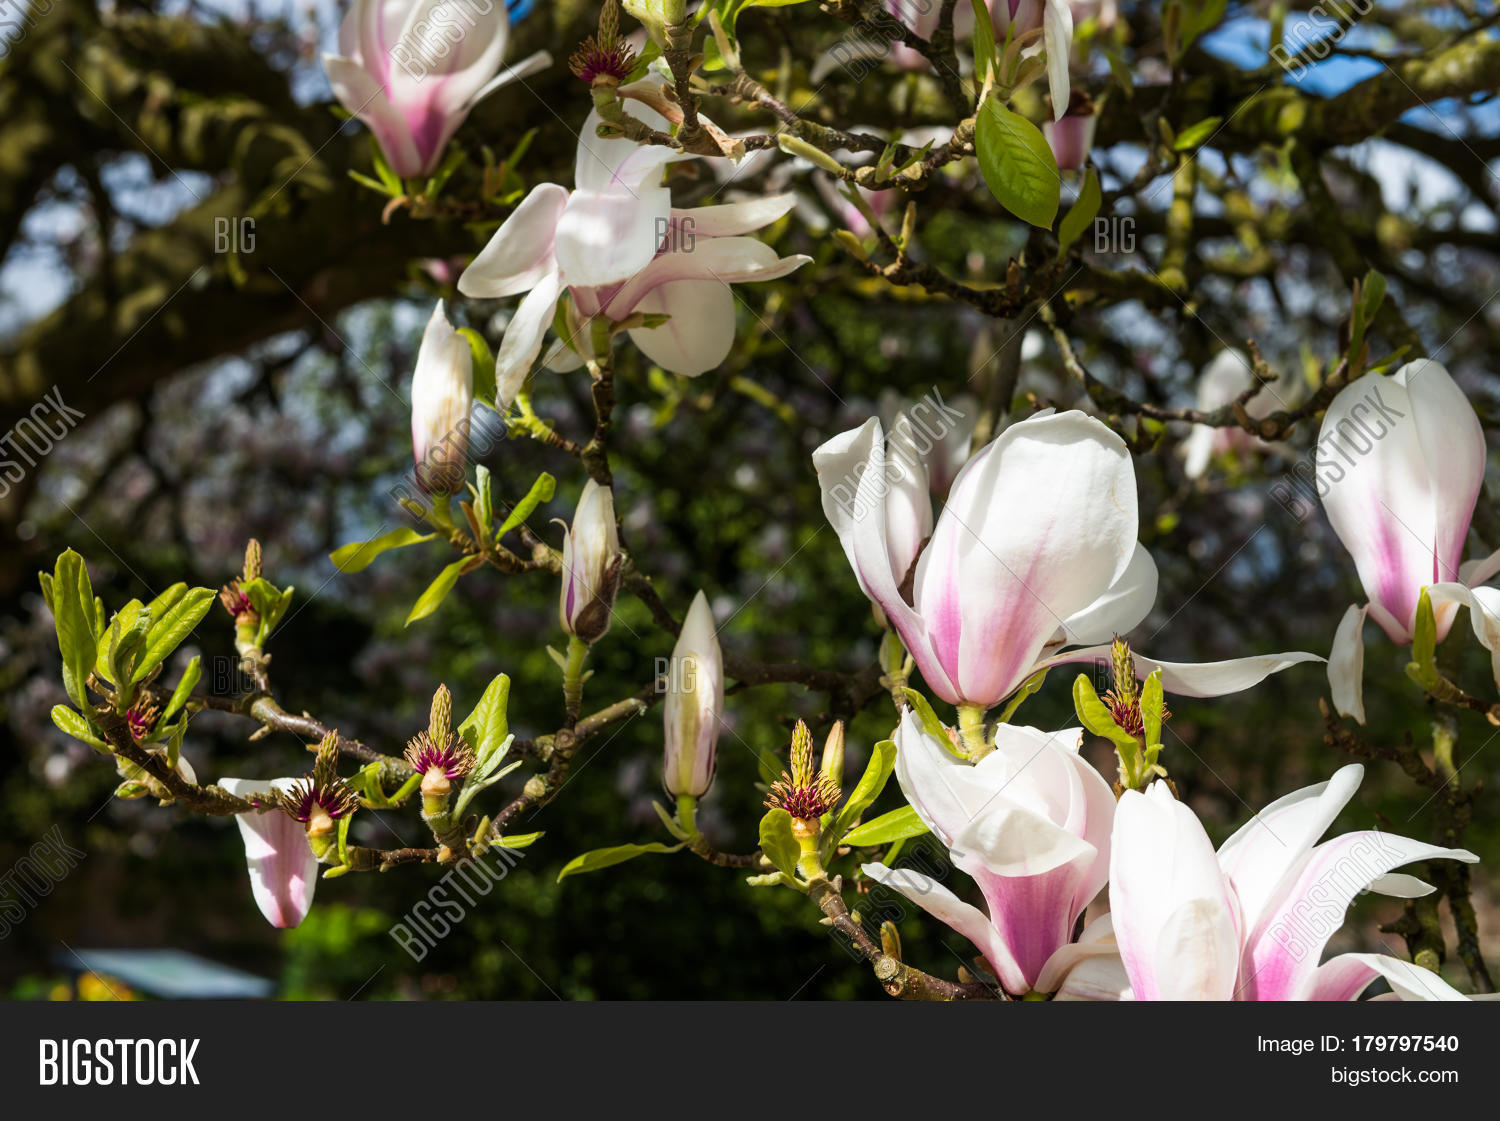 Pink Purple Magnolia Tree Blooming Image & Photo | Bigstock